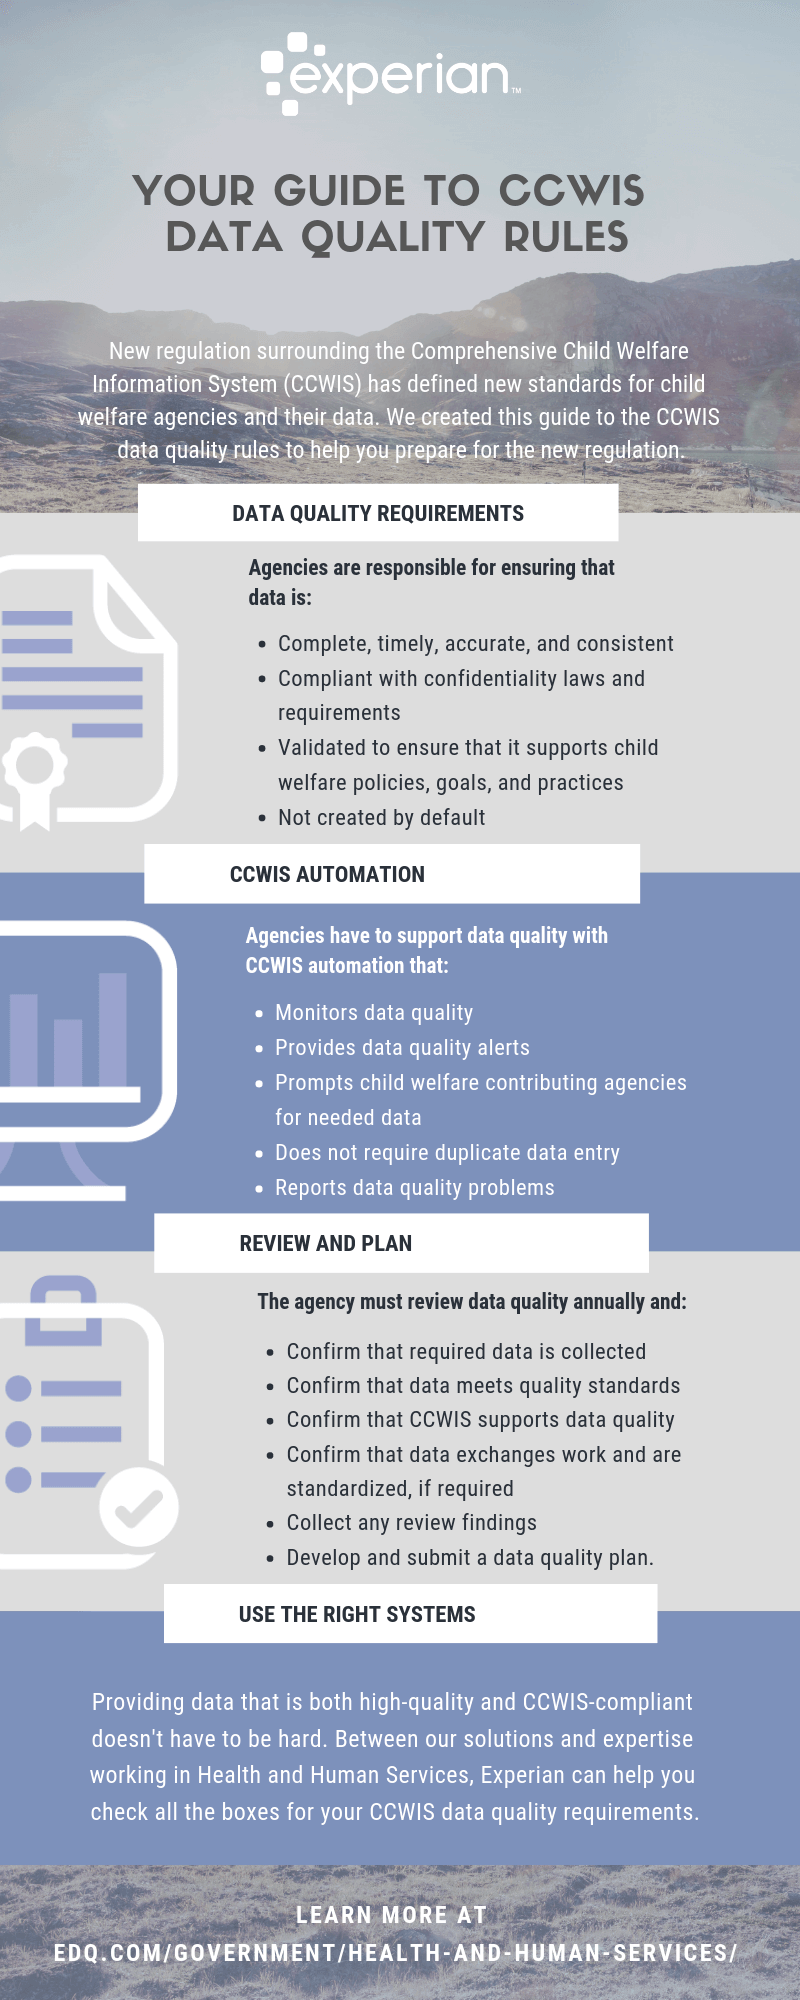 infographic-guide-to-ccwis-data-quality-rules.png